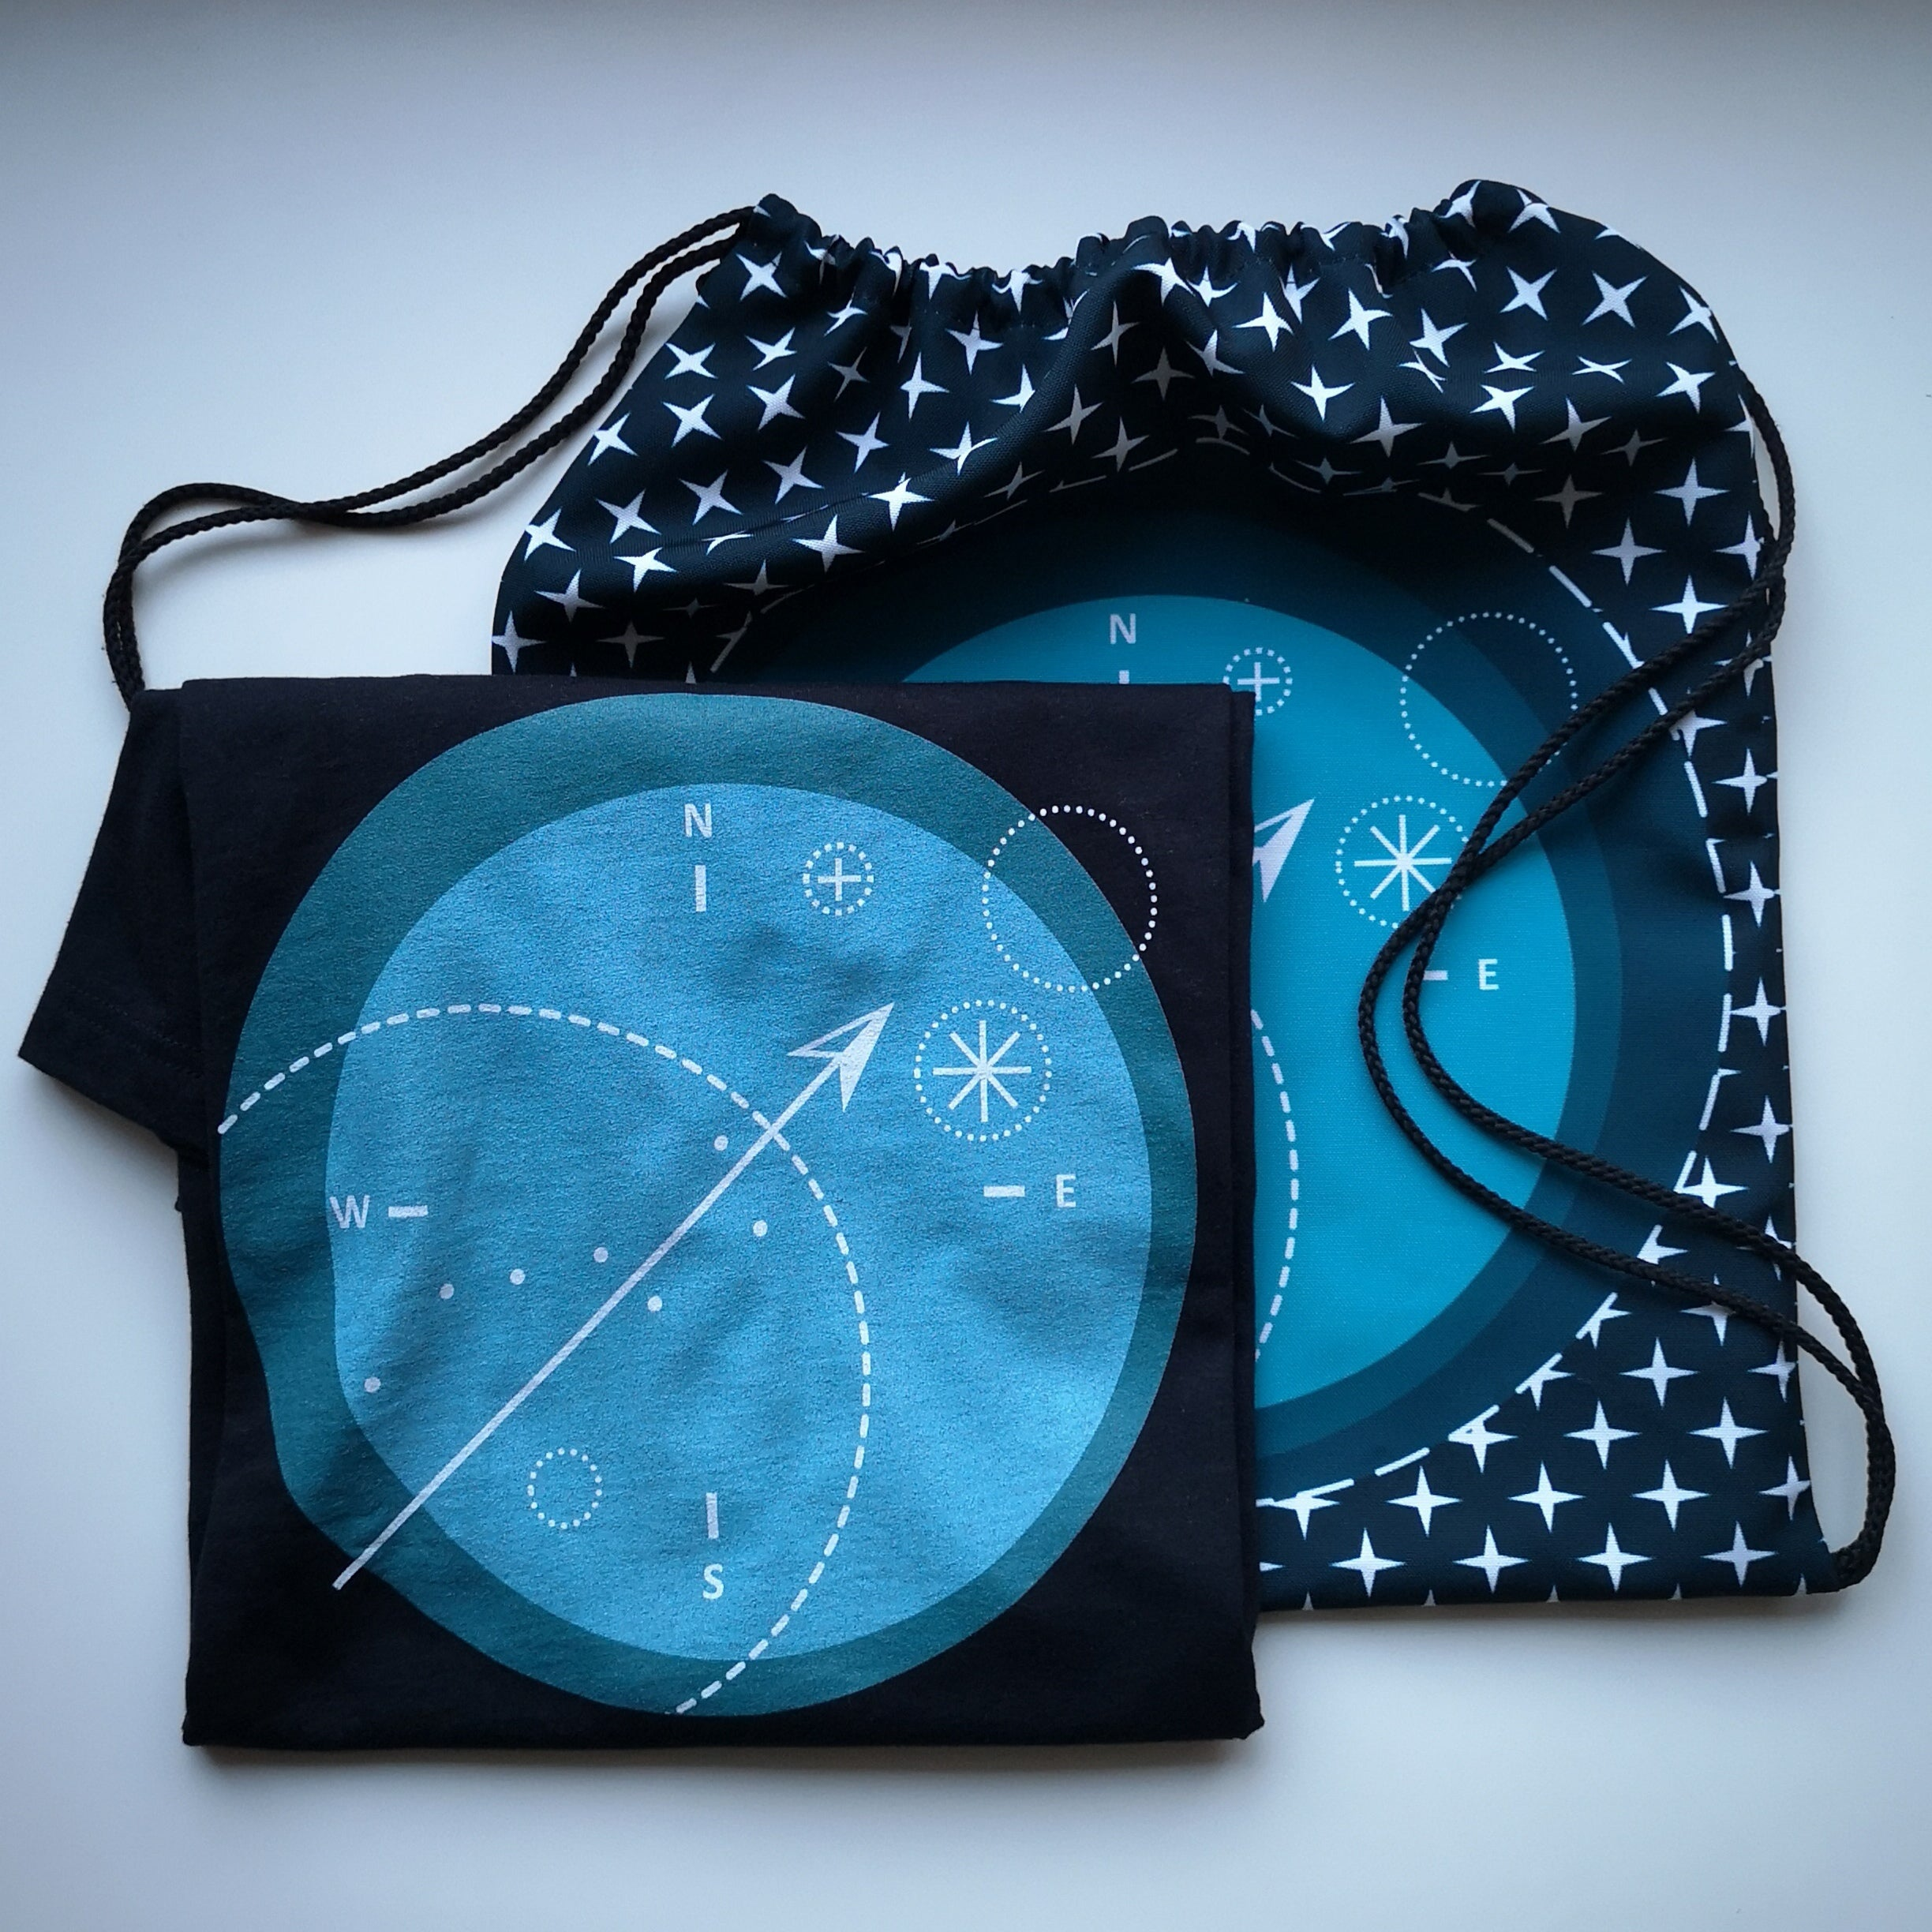 compass t shirt and drawstring bag tamed winds t shirt shop and blog